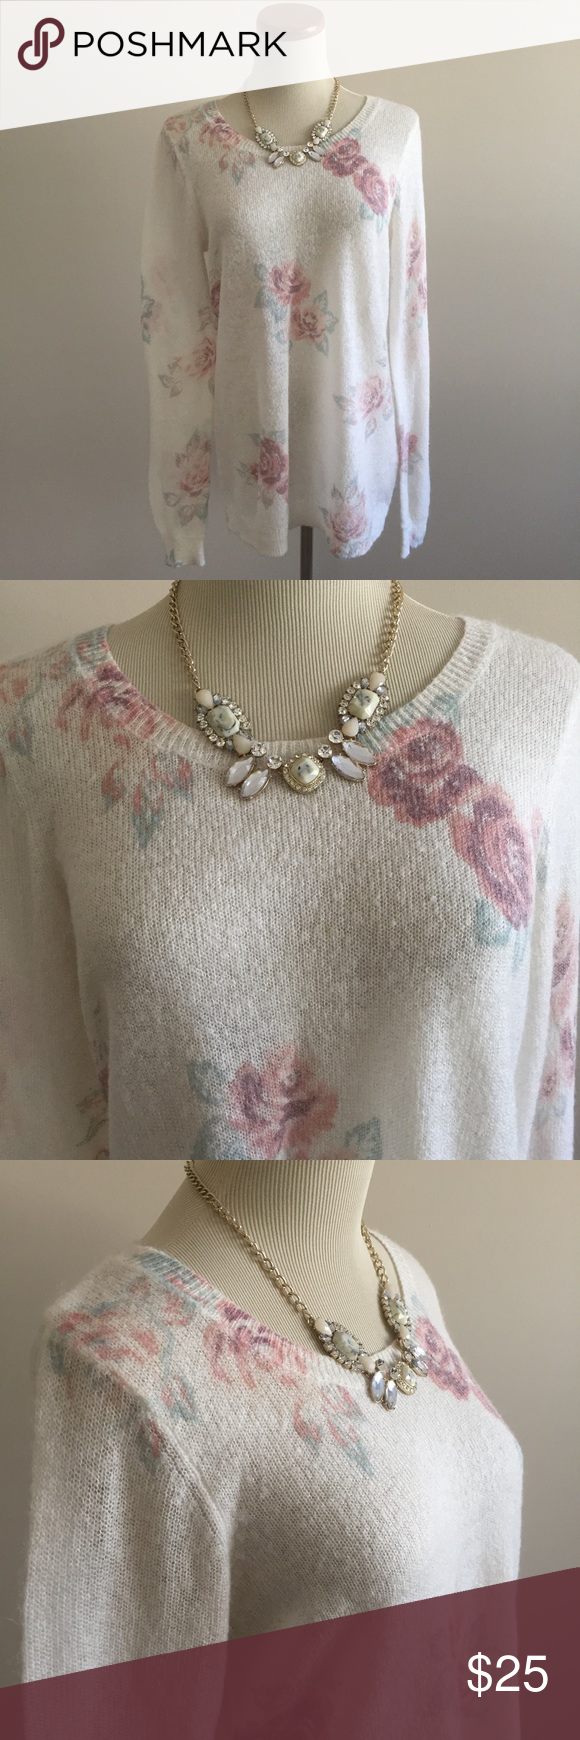 LC Lauren Conrad Floral Sweater Gorgeous rose floral tunic sweater by Lauren Conrad's LC for Kohl's collection. This sweater is thin and perfect for laying in cool weather or wearing alone in warmer months. Snow white sweater with pastel blue and pink flower detail. Long sleeves, ribbon tie keyhole back and scoop neck. EUC and size M, but the fit is a bit looser, purposefully oversized for a relaxed fit. Stock photos included for reference. Listing for sweater only. Offers welcome. LC Lauren…